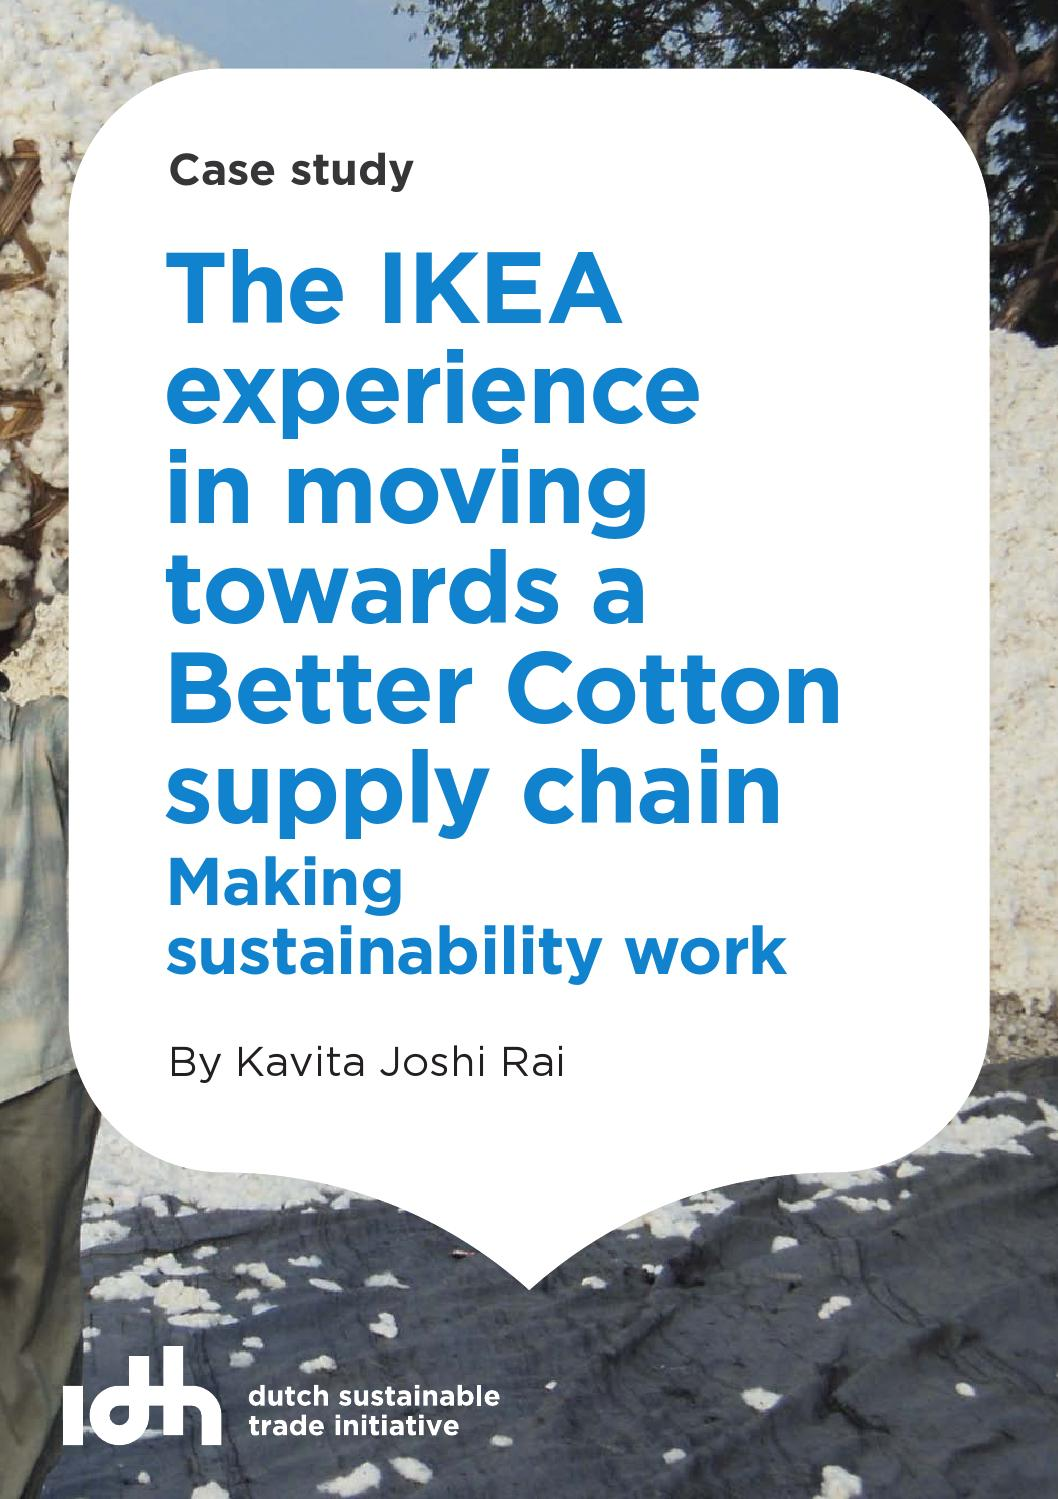 IDH COTTON: The IKEA experience of Better Cotton by IDH, The